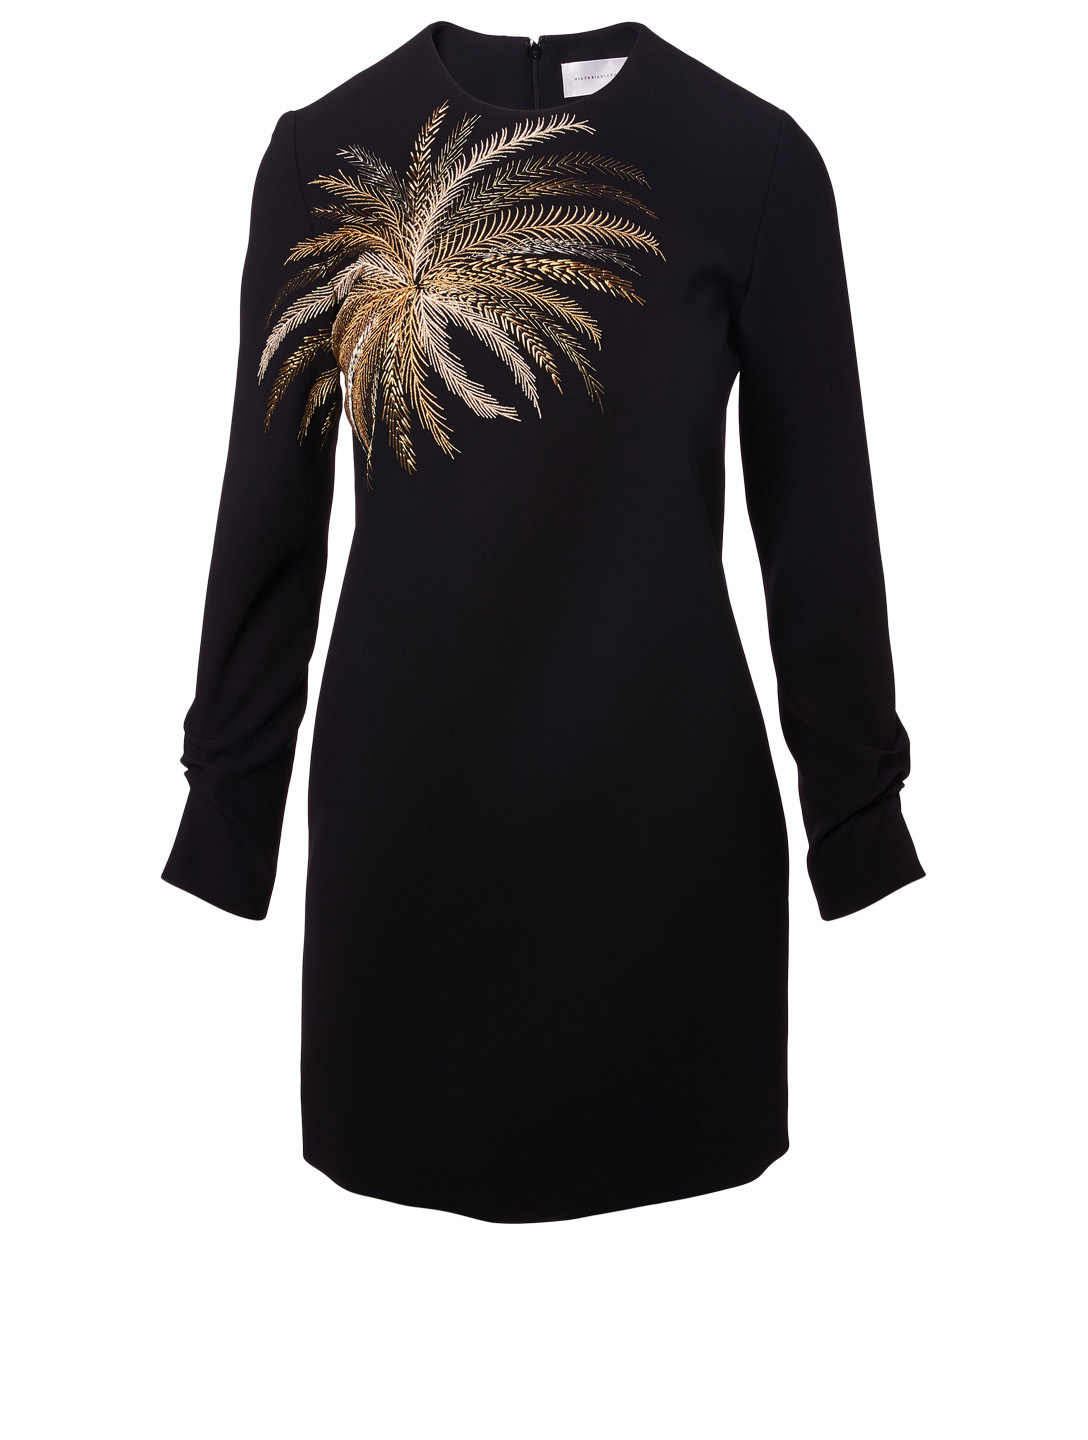 972516cdd VICTORIA VICTORIA BECKHAM. Crêpe Shift Dress With Embroidered Palm Tree